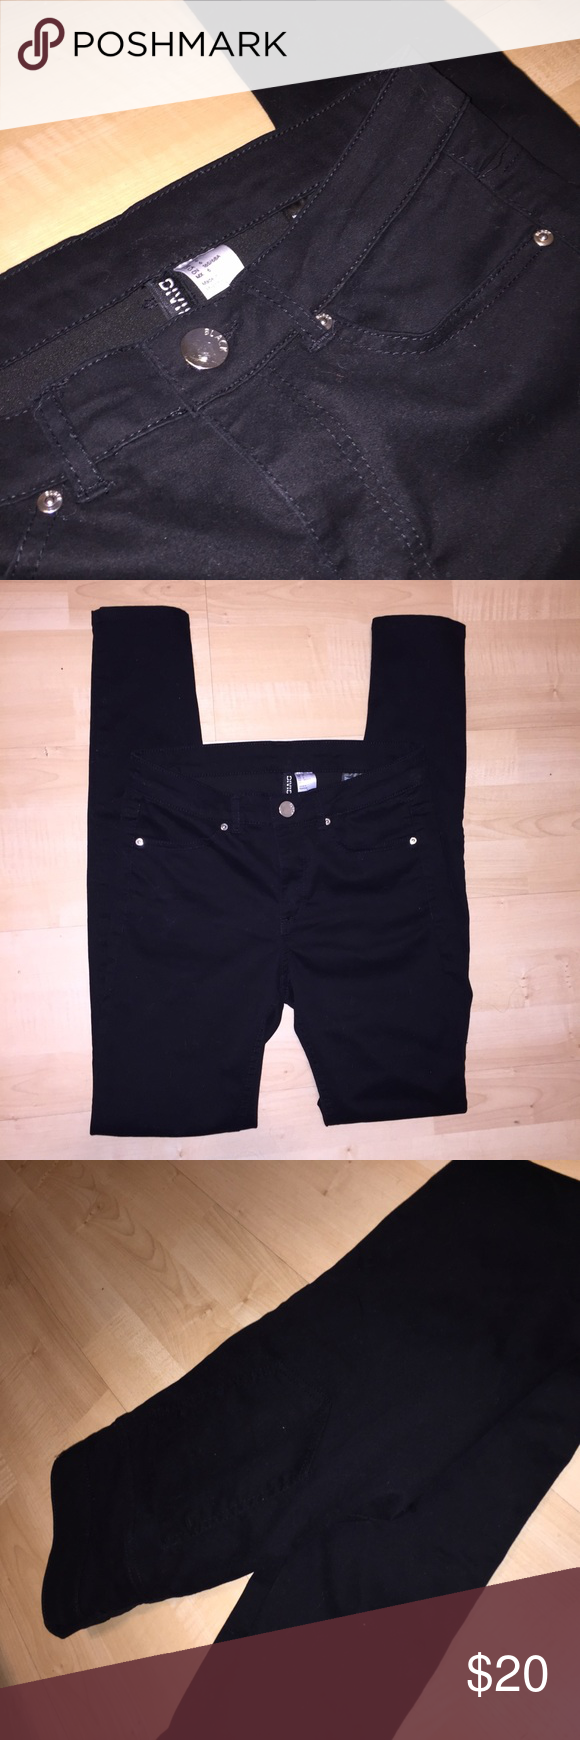 H&M black skinny jeans Like new💕 great quality, super soft, semi stretch. Hugs your body. Grew out of them but they're  in great condition. H&M Pants Skinny